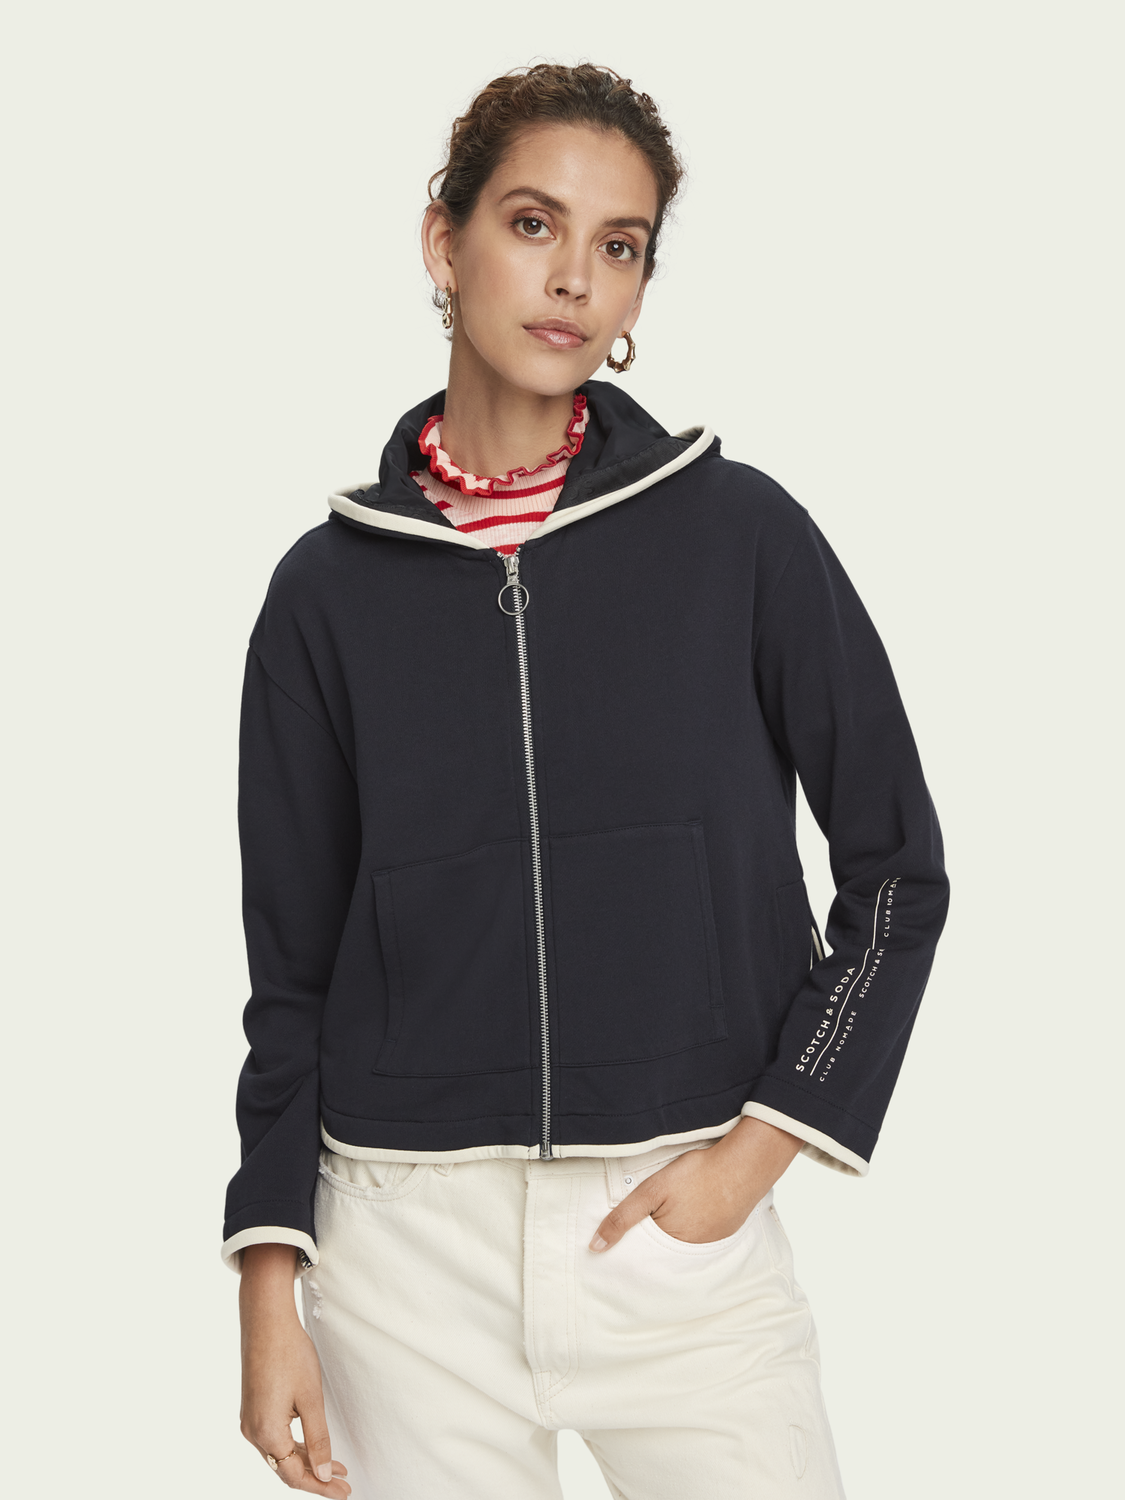 Women Hooded zip up sweatshirt